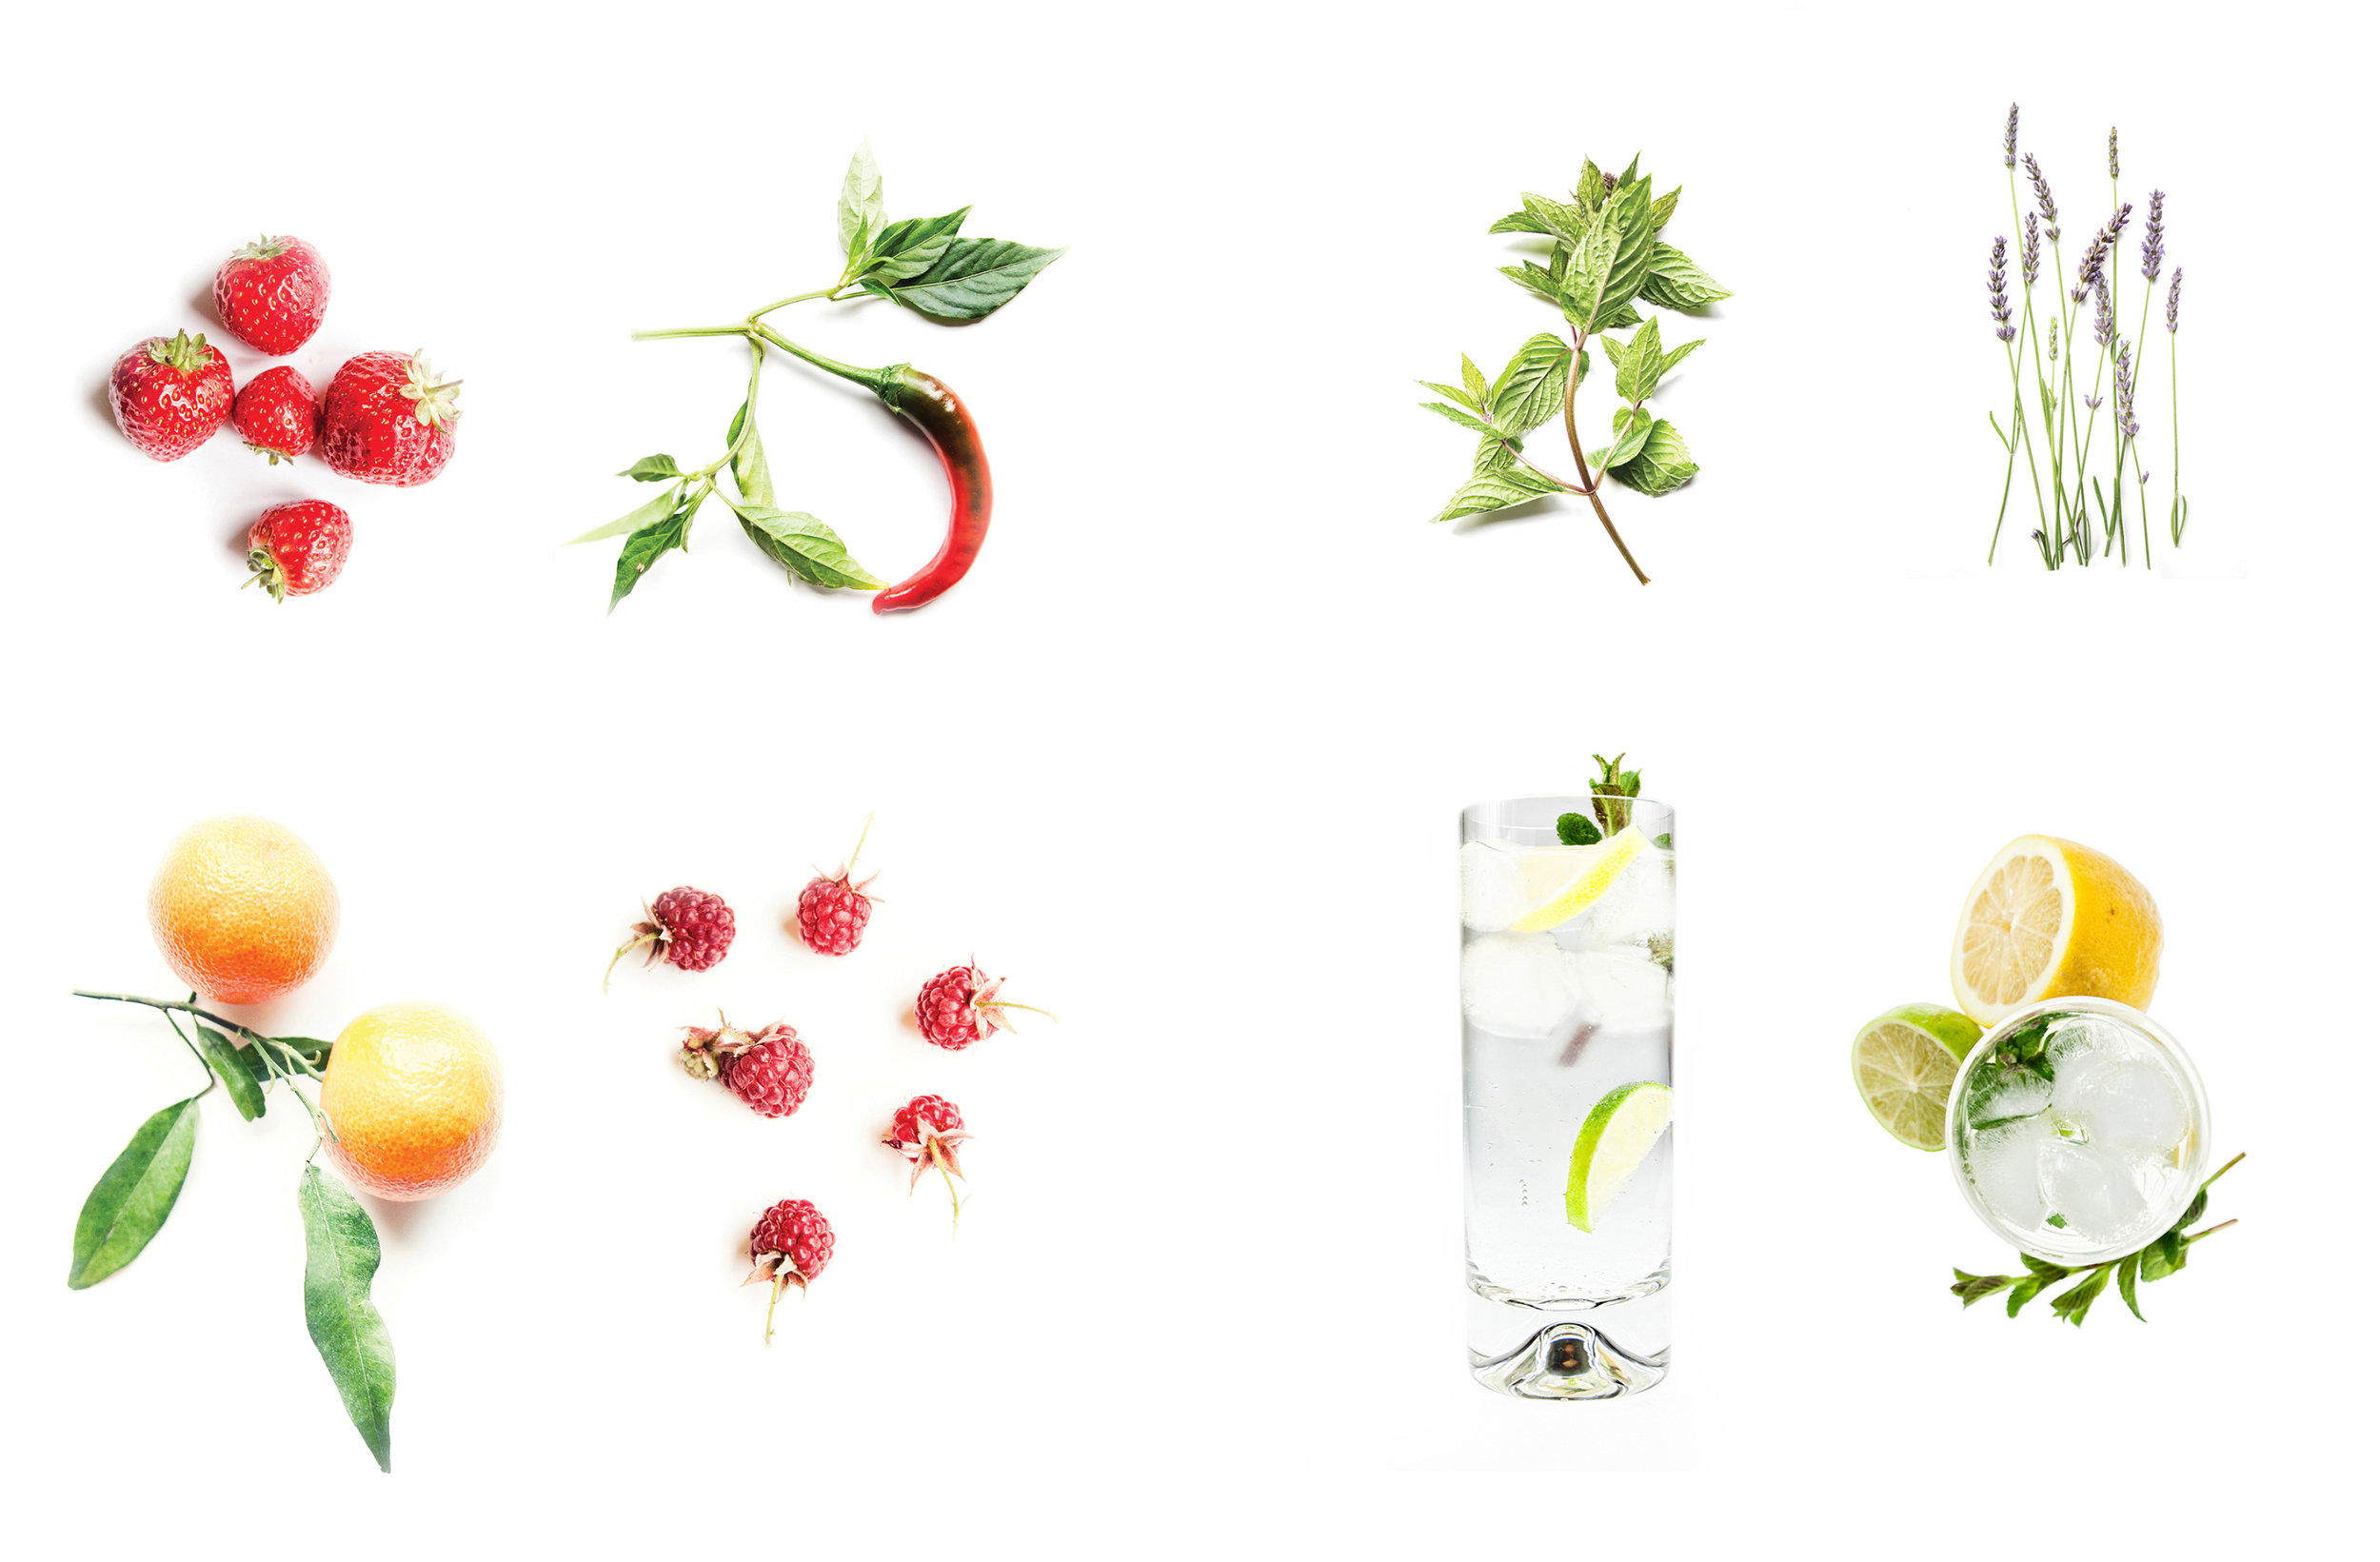 Ana's own professional photography features in the Gordon Castle design range, notably the unique gin bottle design showing herbs collected from the Walled Garden. The look and feel of Gordon Castle's website, publicity material and online shop were also developed in line with the exclusive product range.